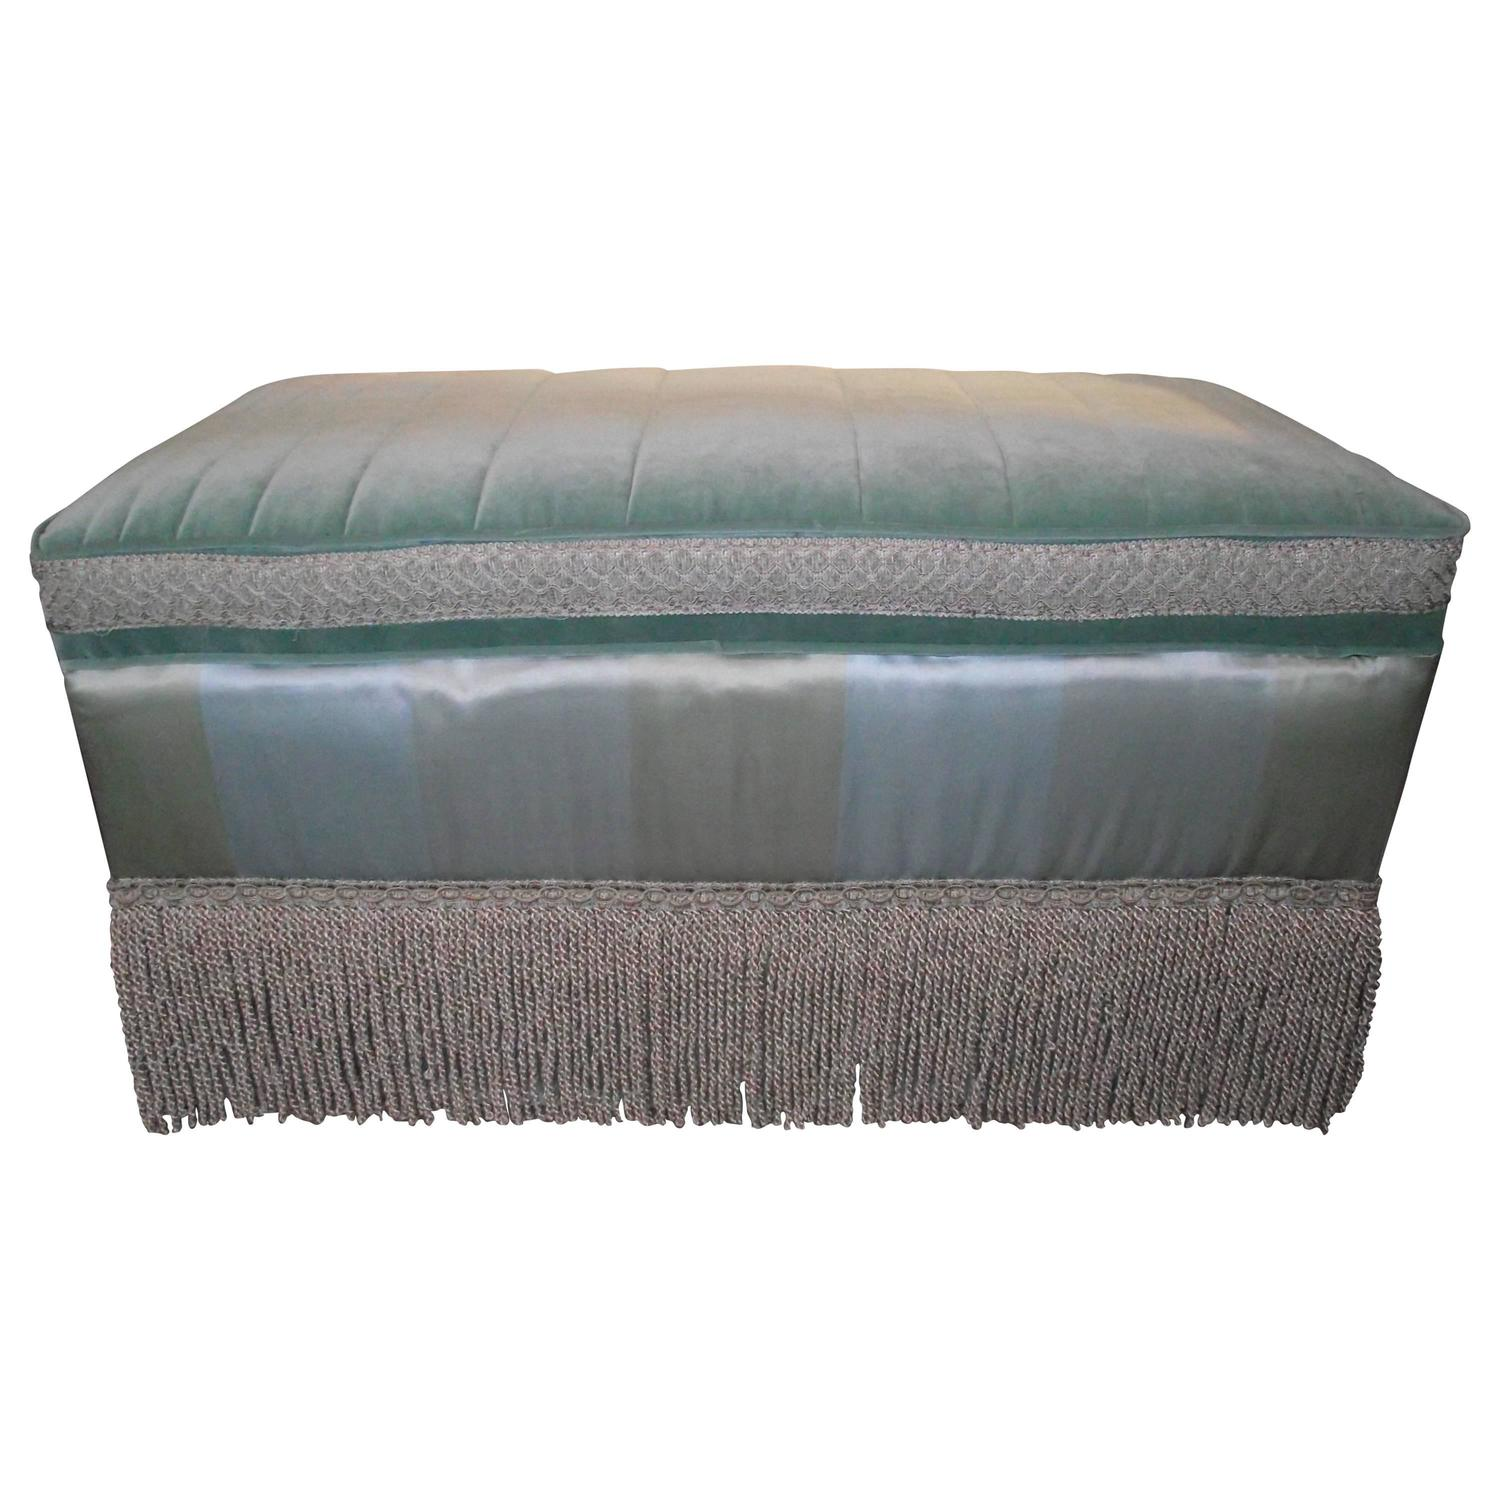 Ottoman Cocktail Table Size In Cotton Silk Blue And Green Stripe For Sale At 1stdibs